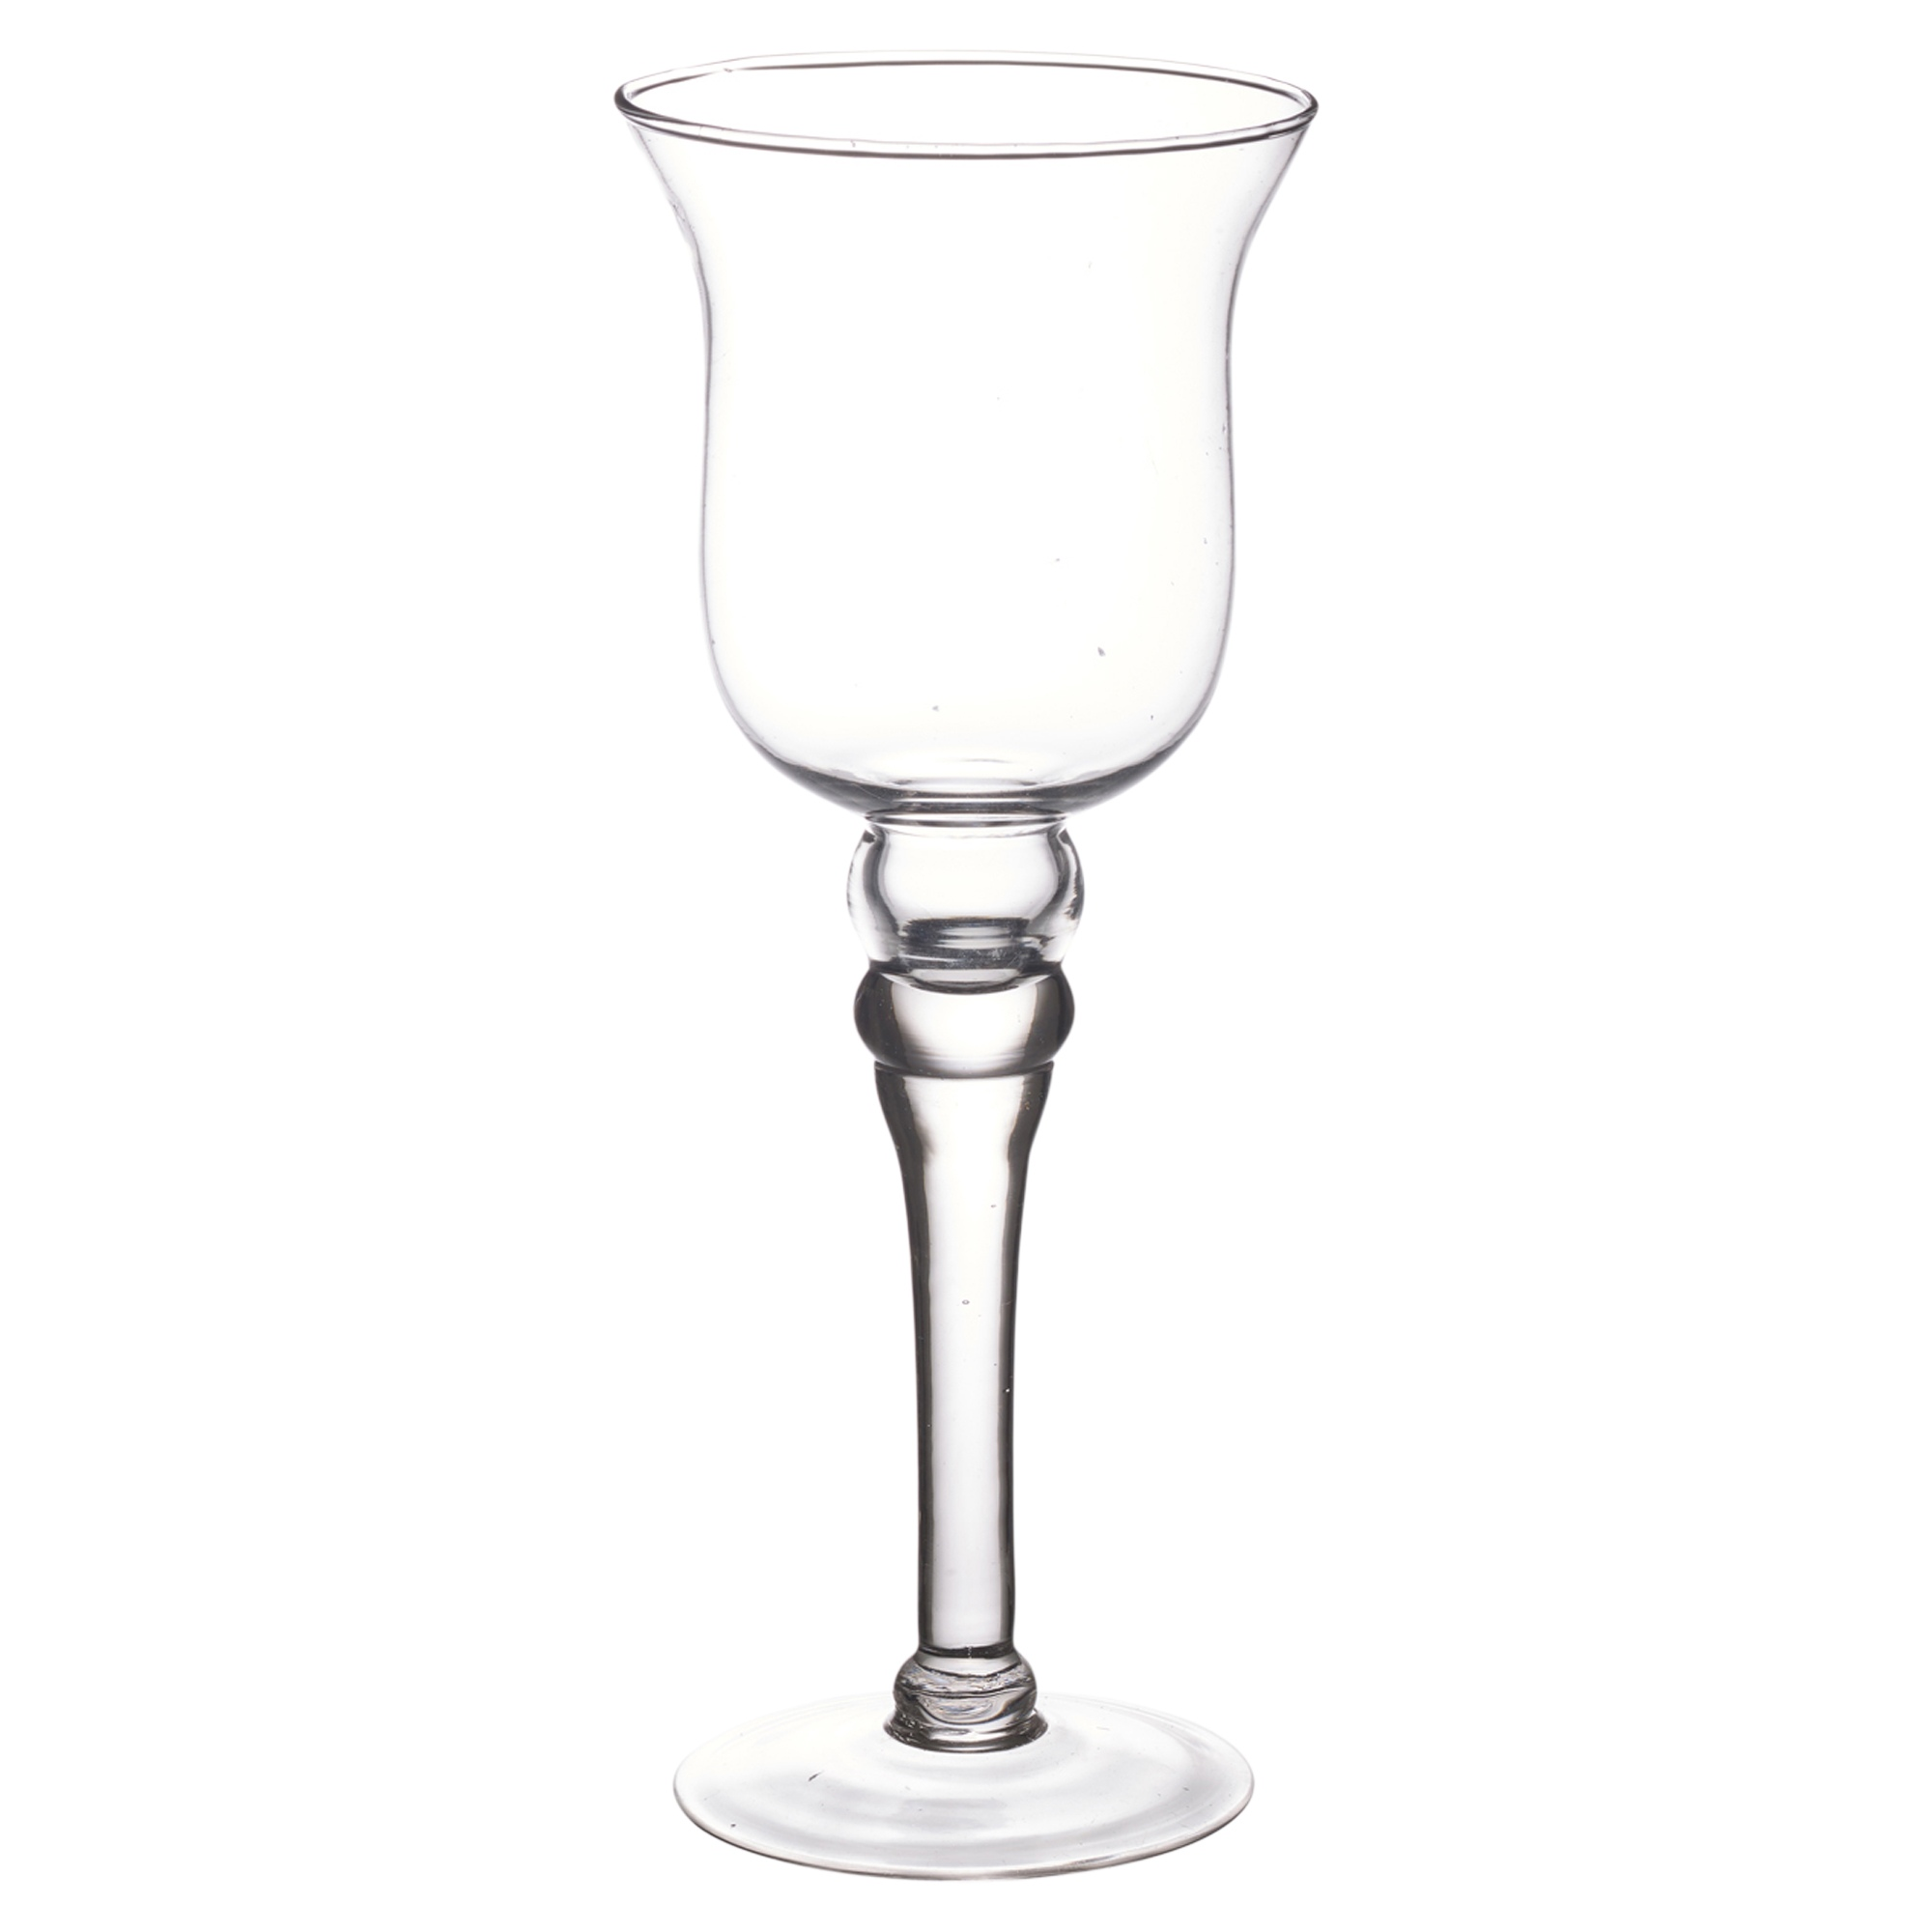 Set of tall glass large candle holders centerpiece tea